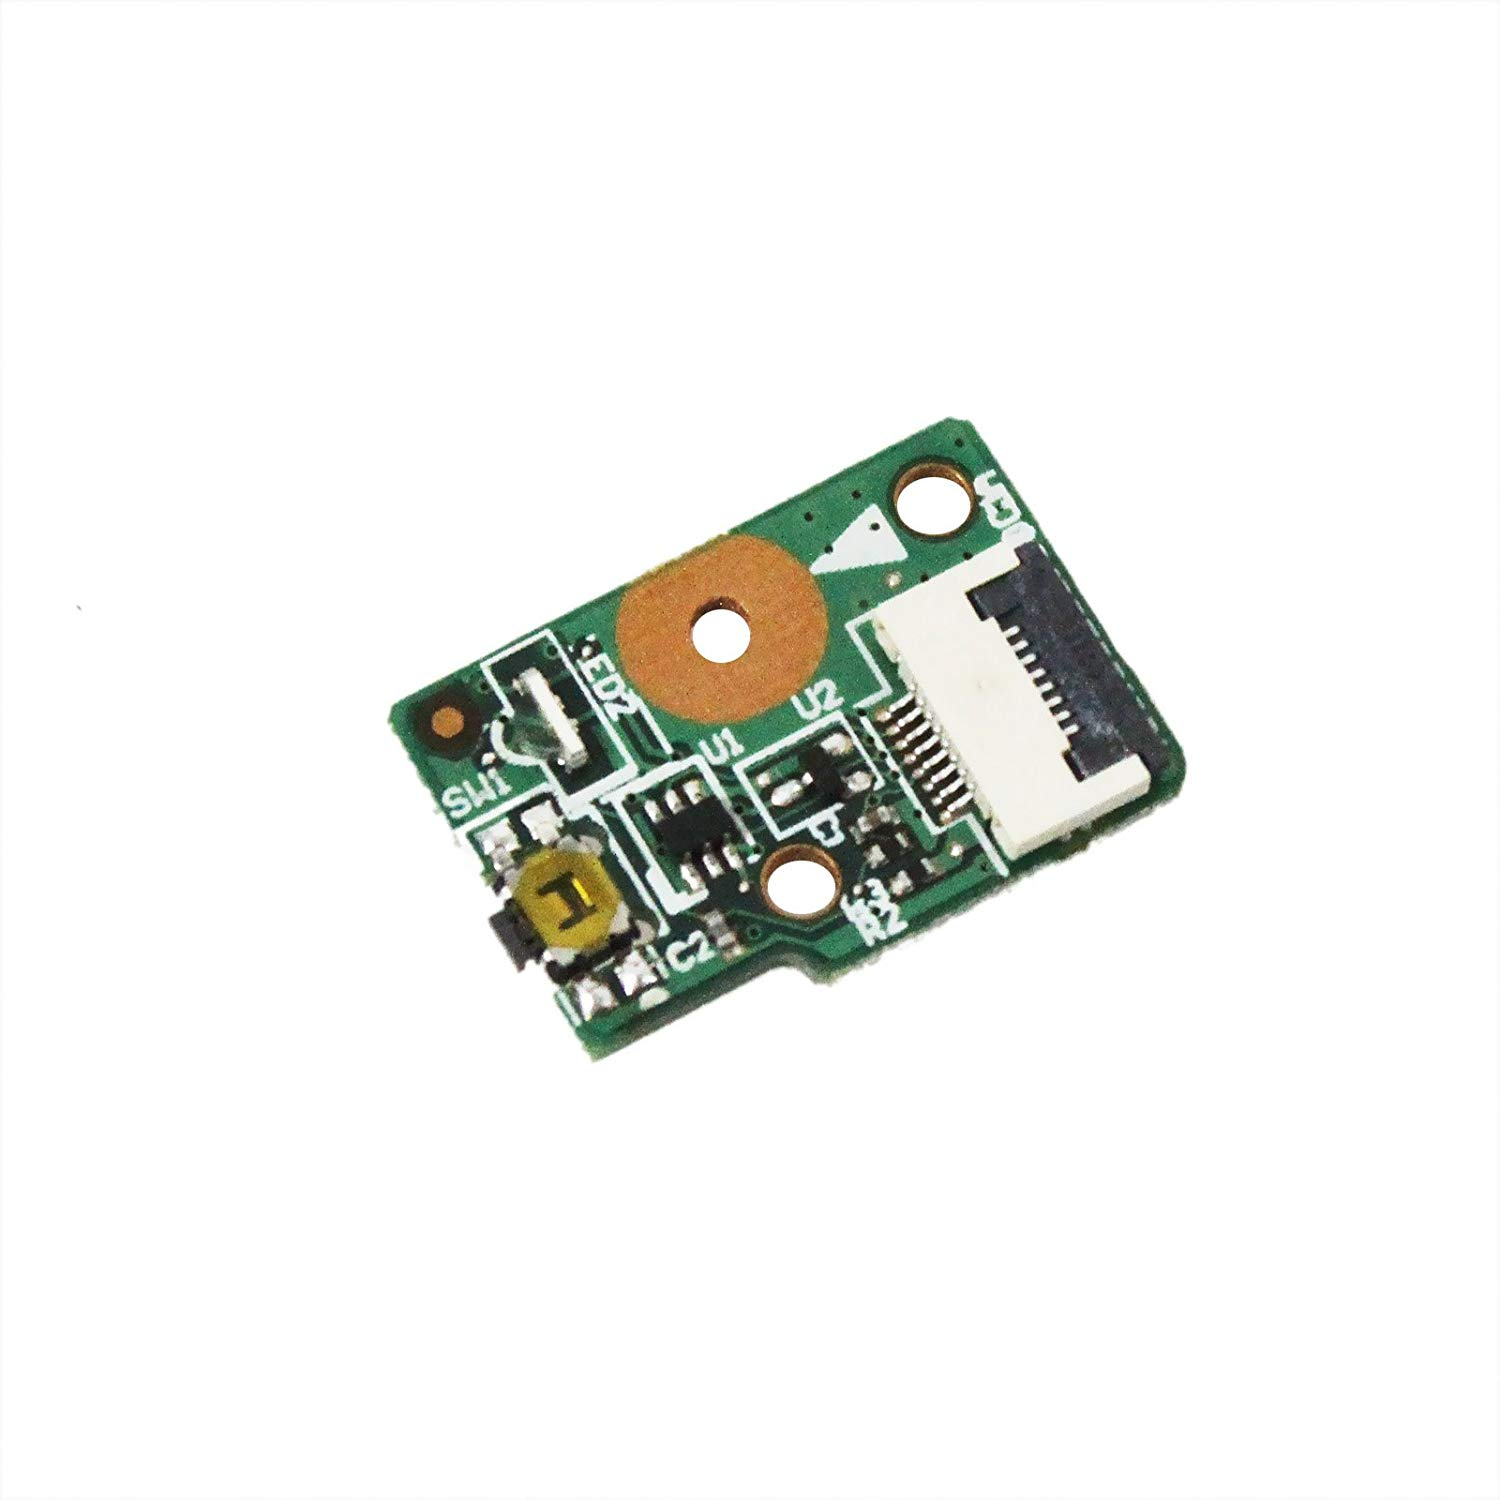 GinTai Power Switch Button Board Replacement for Lenovo Flex 2-14 2-14D 2 15 15D 59426098 5C50F76769 5C50F78739 5942 20404 20405